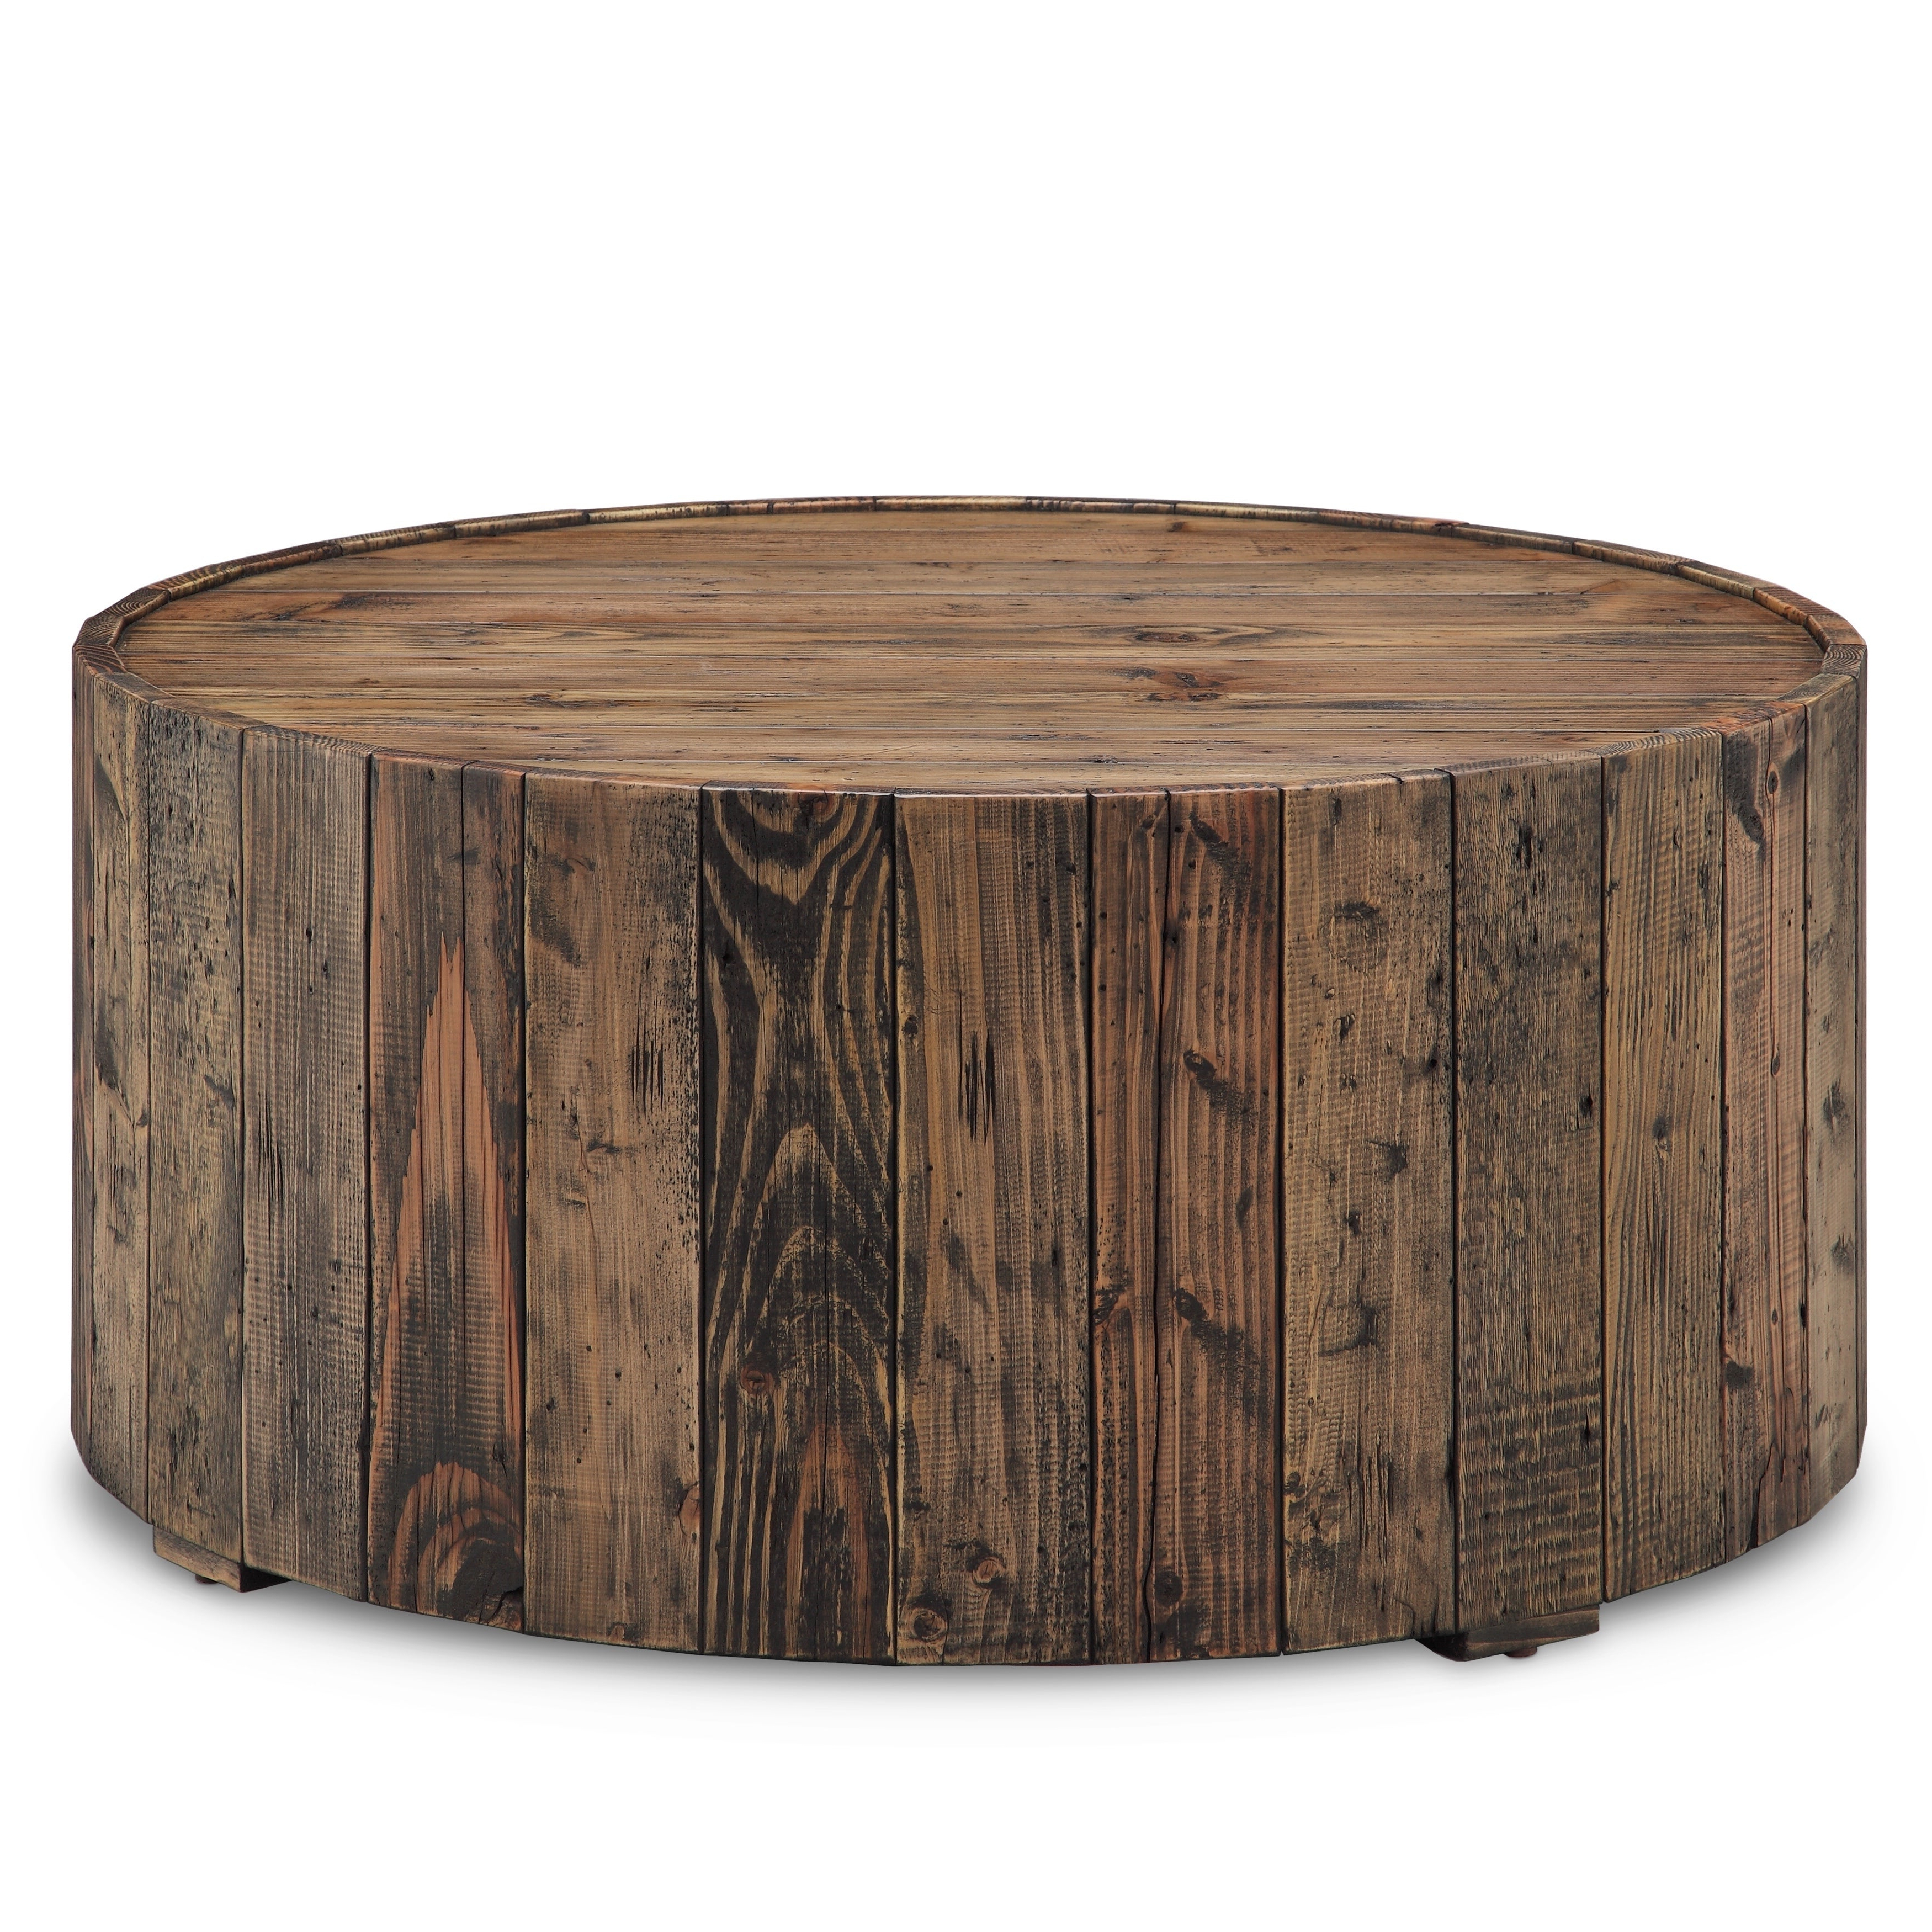 Current Montgomery Industrial Reclaimed Wood Coffee Tables With Casters Throughout Carbon Loft Horace Rustic Reclaimed Pine Round Coffee Table With Casters (View 5 of 20)